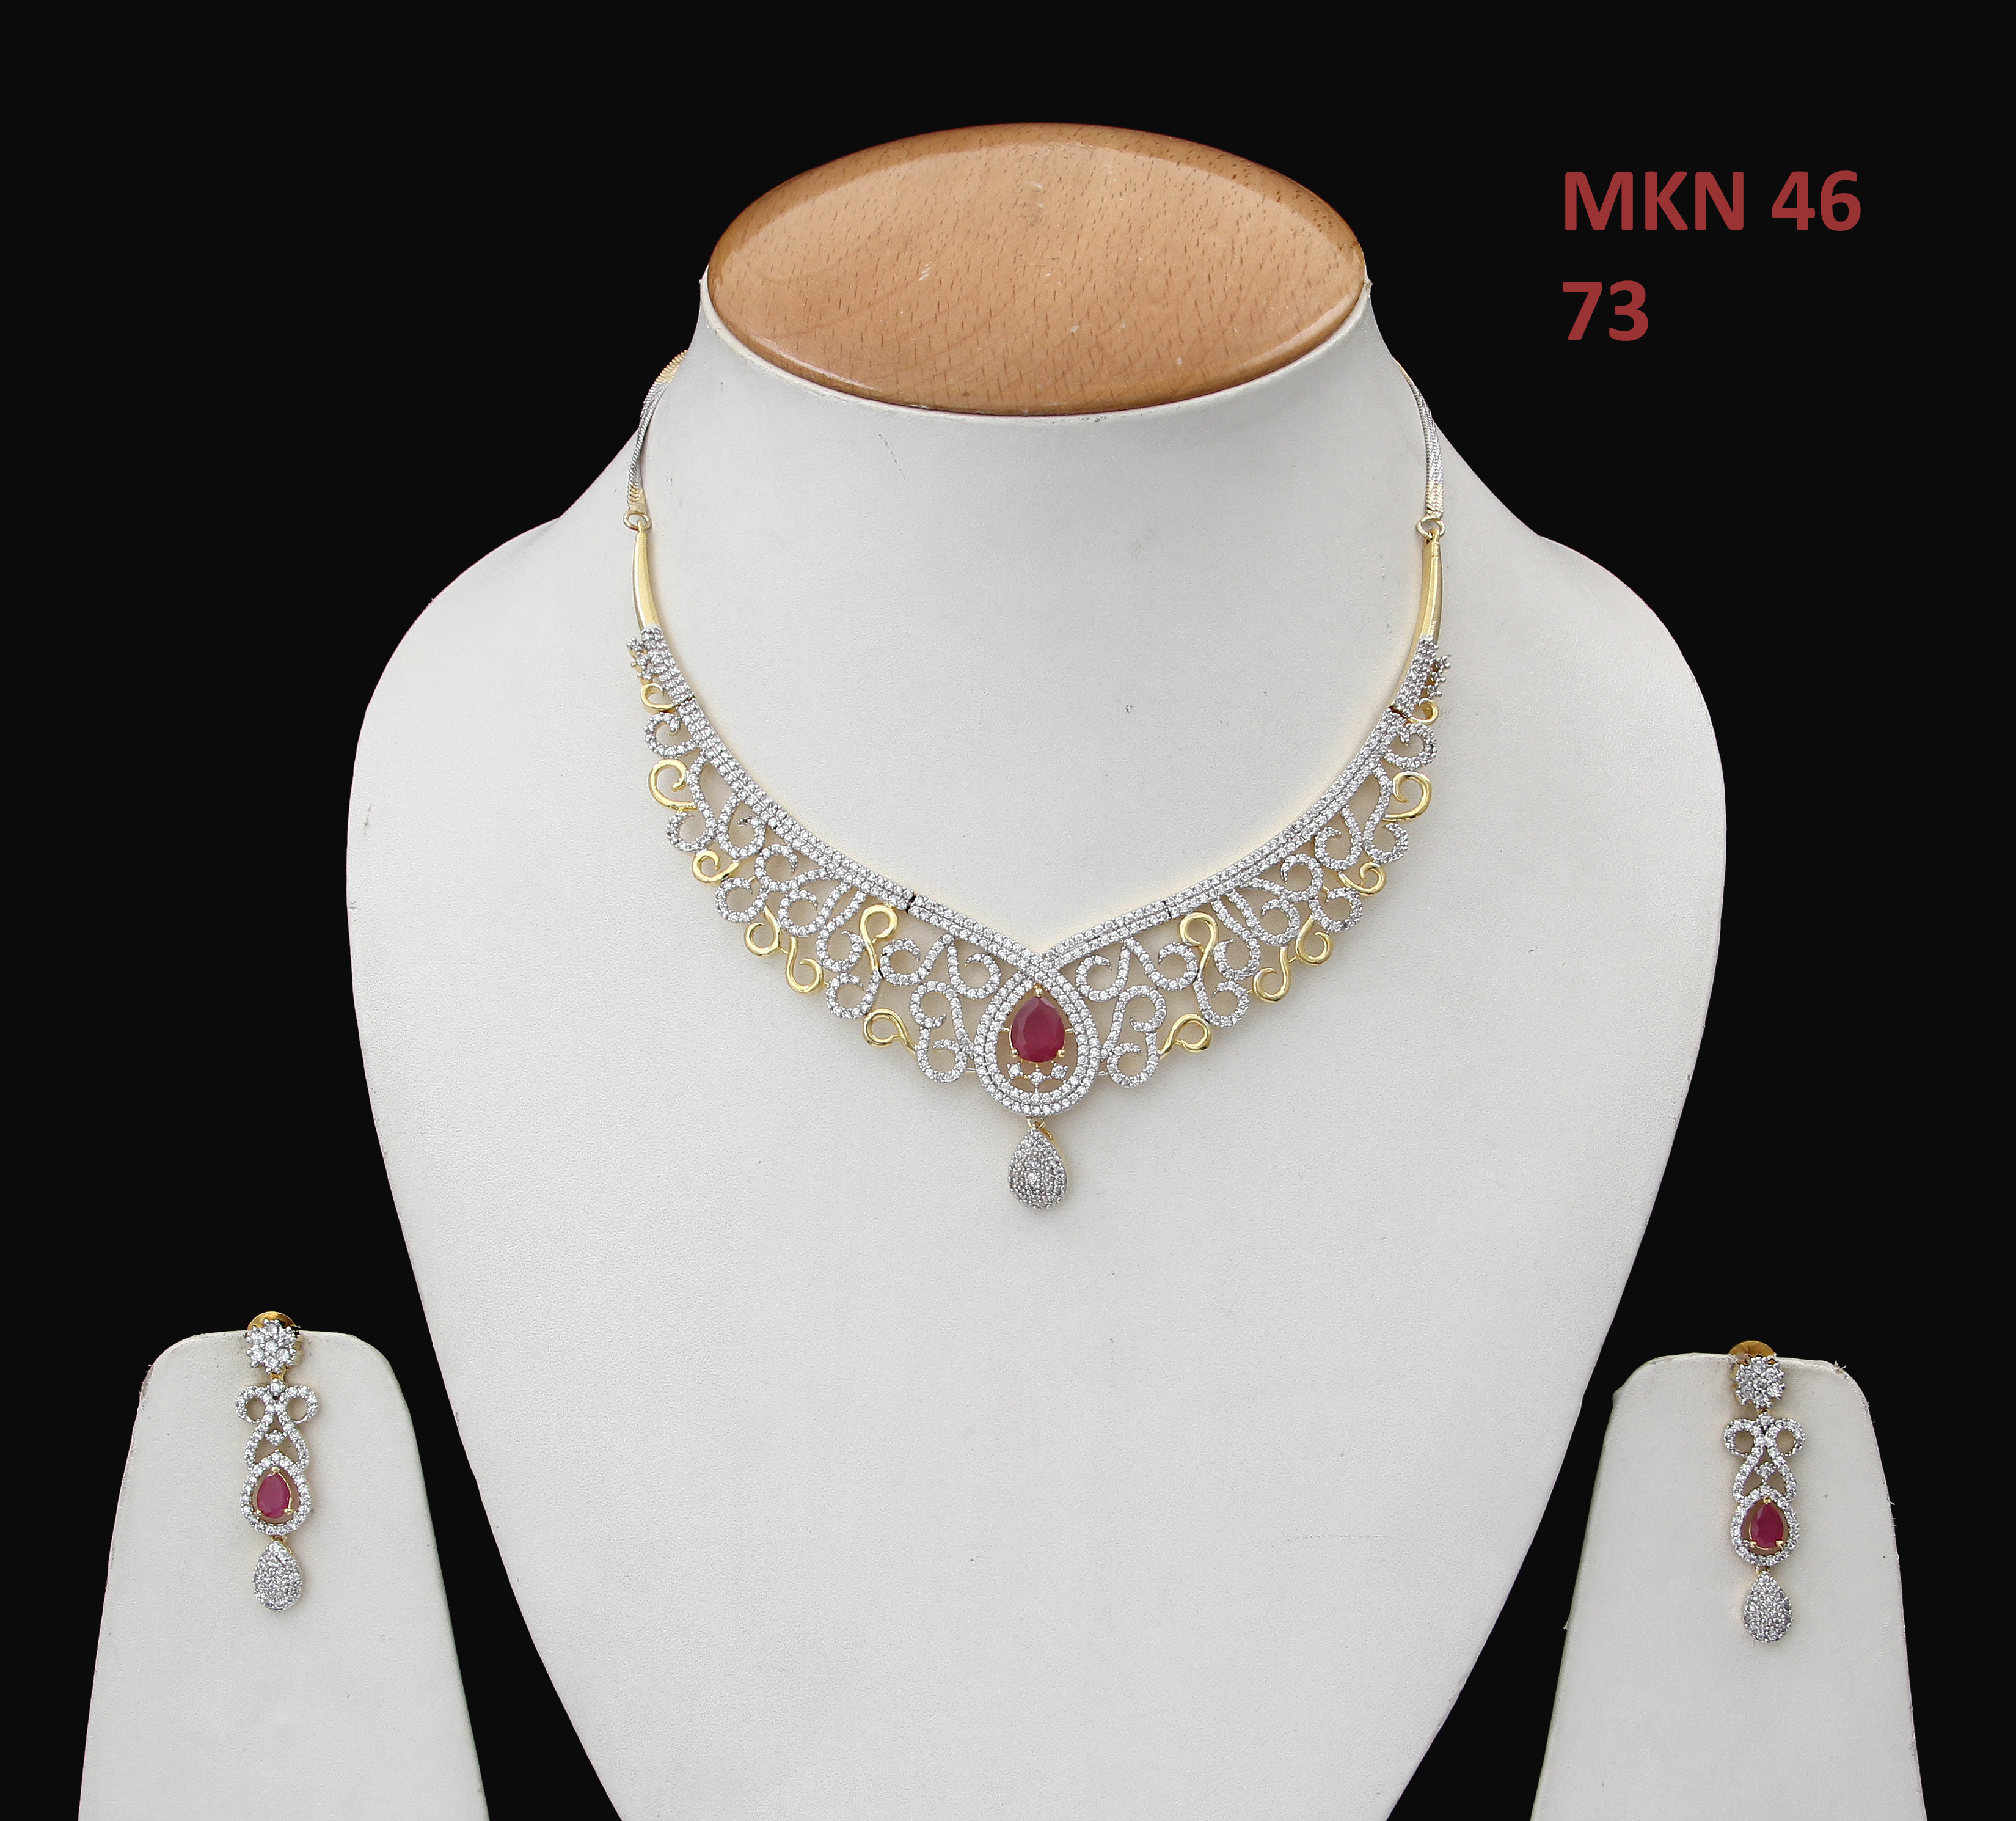 55Carat | 55Carat Trendy Necklace with Earring For Women Girls Ladies Red Onyx Unique Design Chokar Jewellery Set Gold Plated Silver Plated Chain Haar haram Multipurpose Jewellery for Womens MKN 46-RED